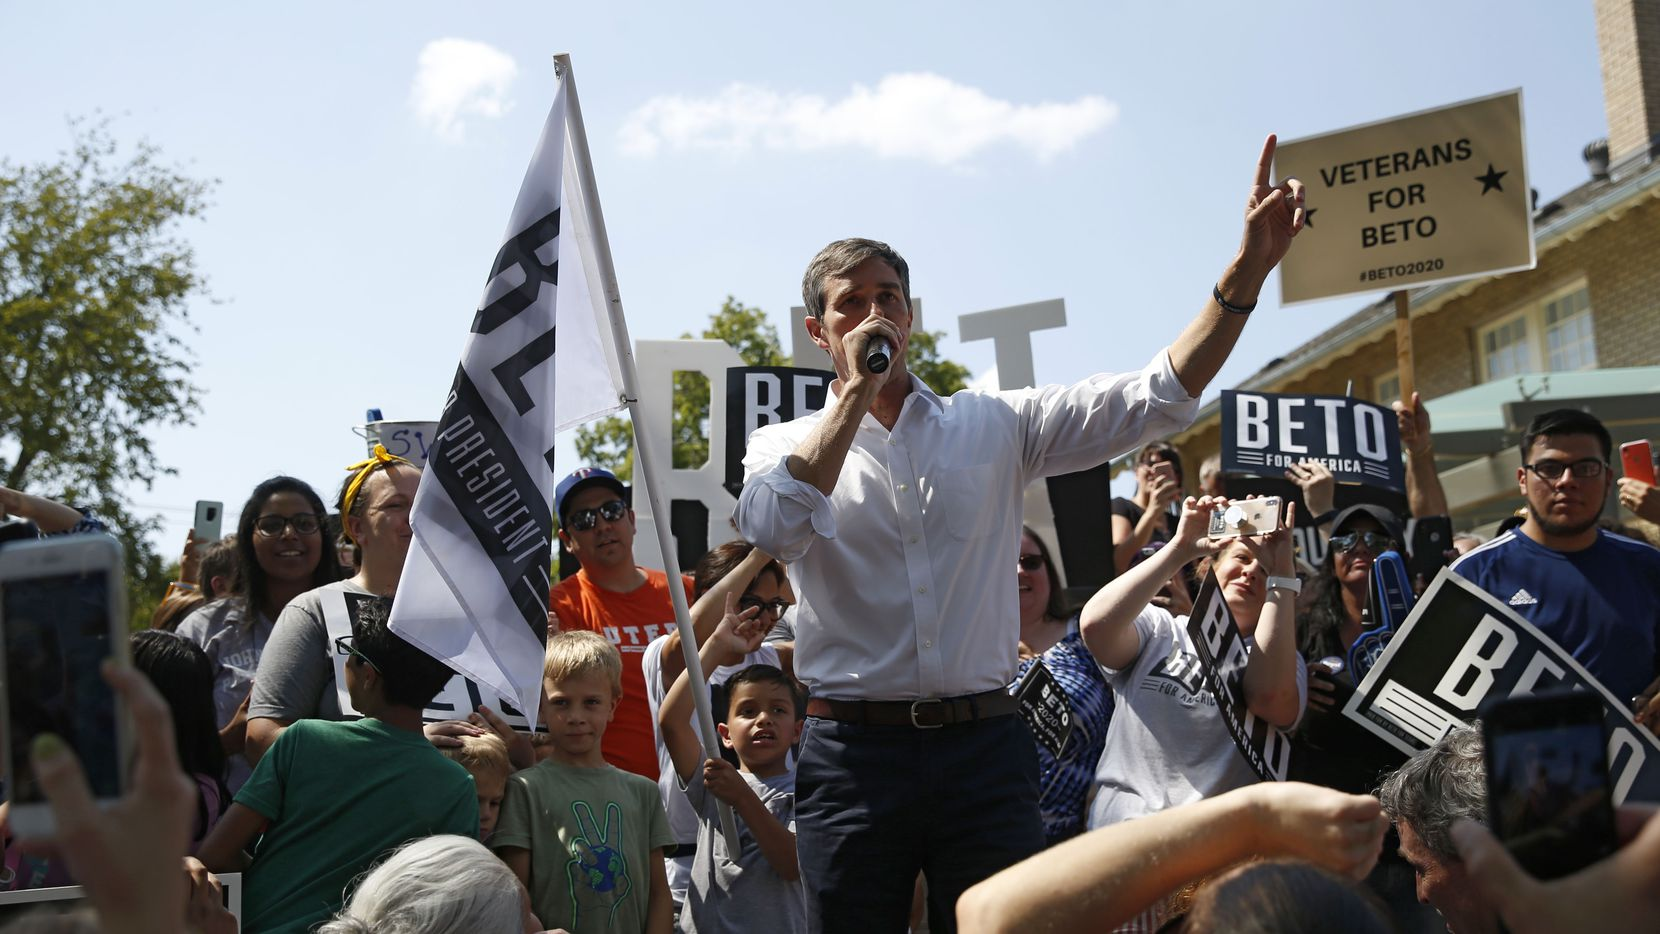 Democratic presidential candidate Beto O'Rourke spoke at a campaign event at Haggard Park in Plano last month.